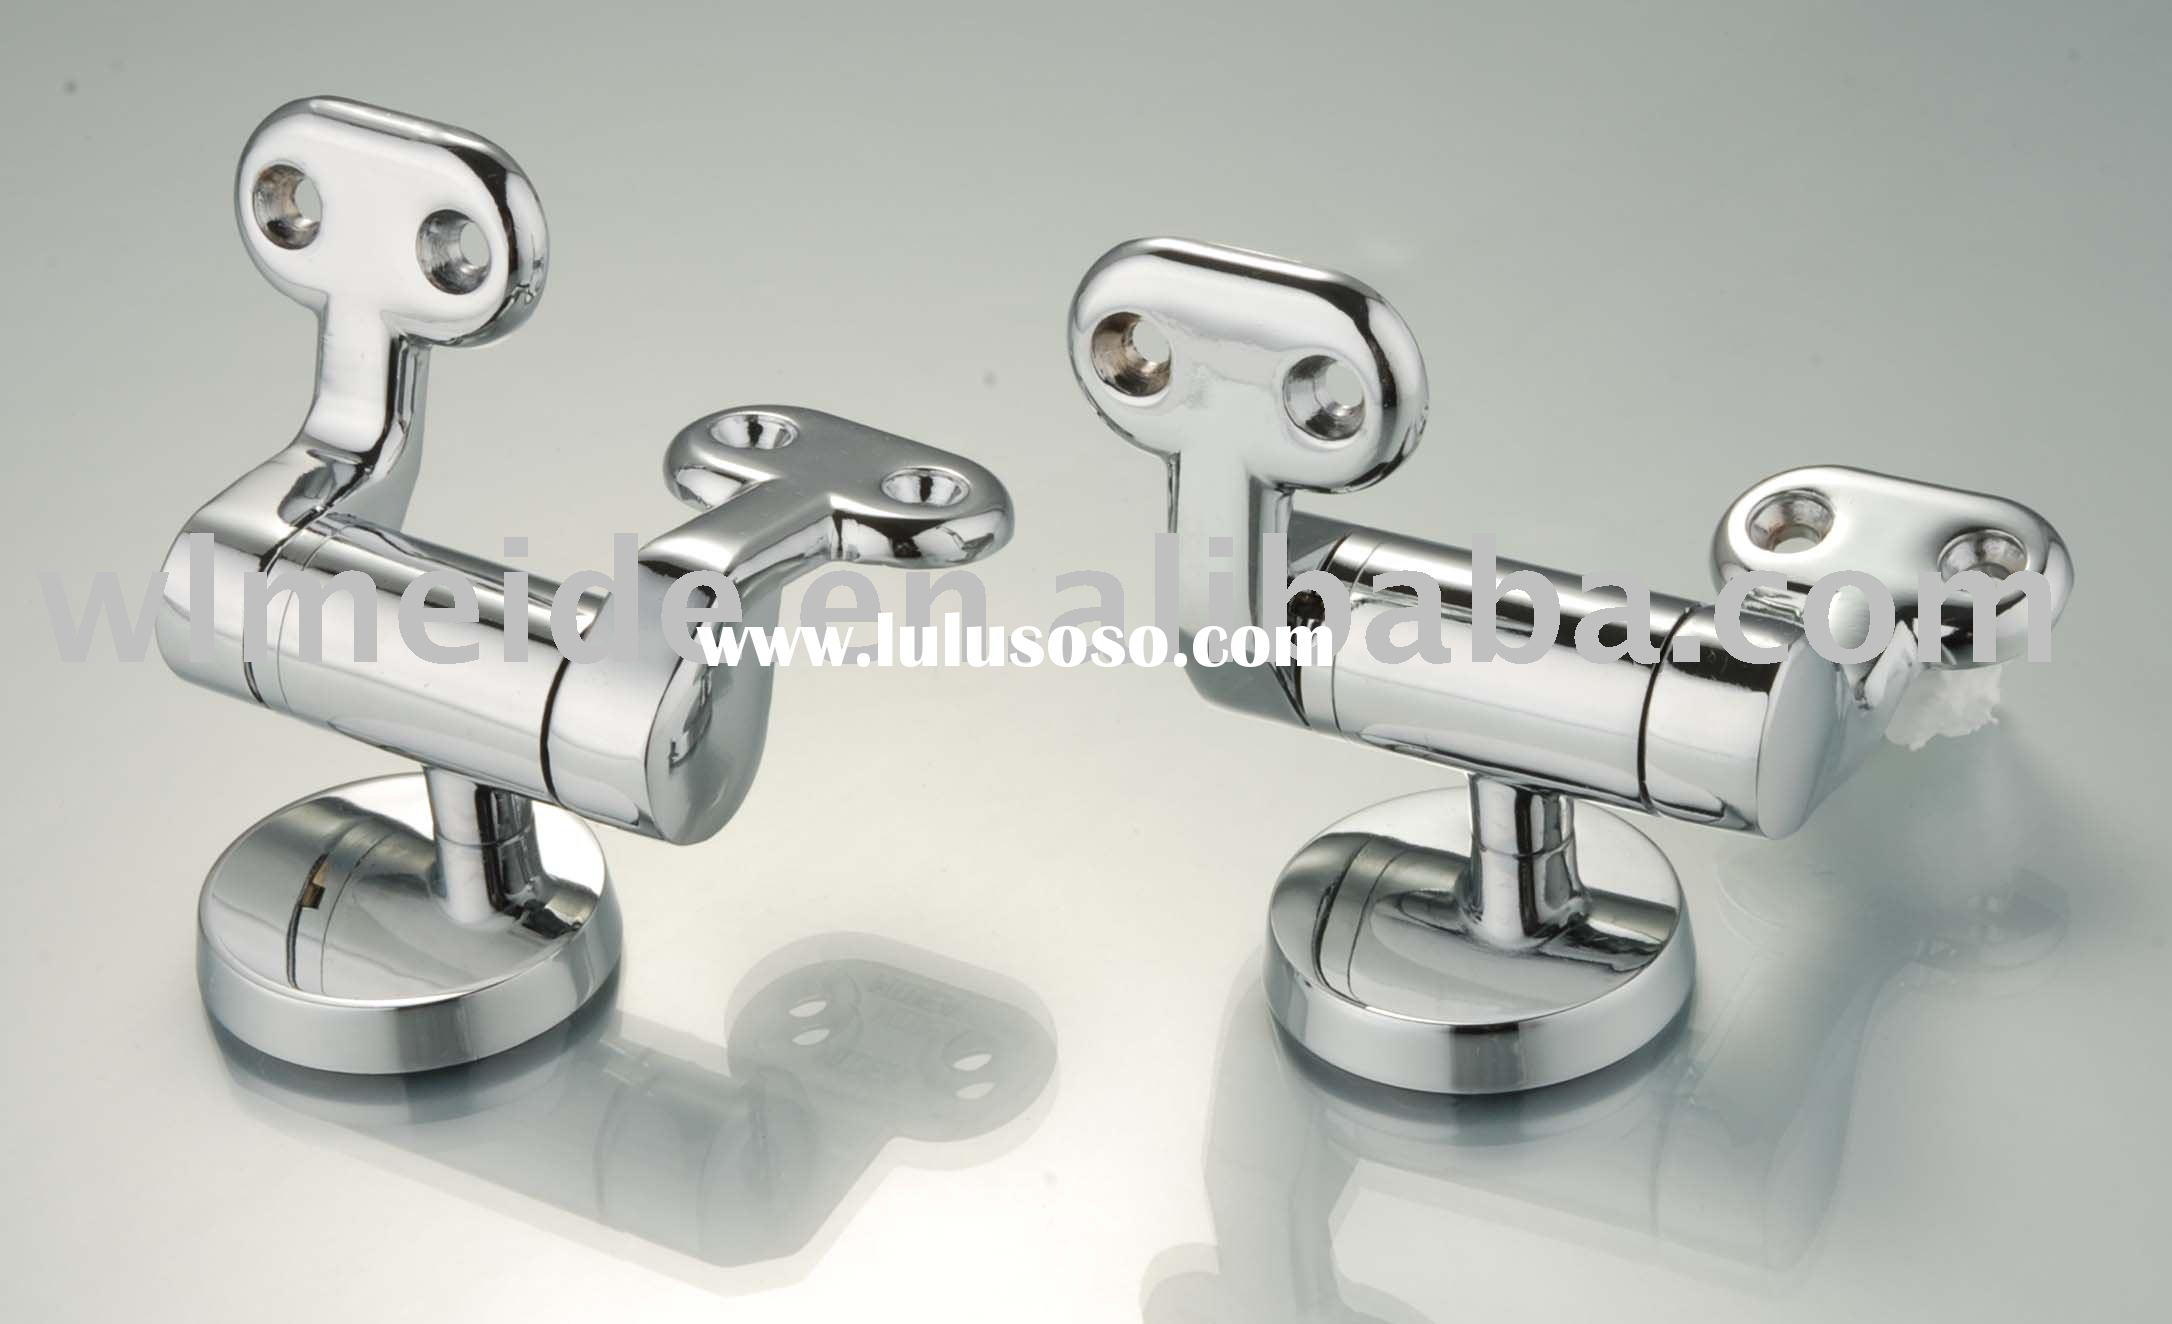 Toilet Seat Hinges Toilet Seat Hinges Manufacturers In